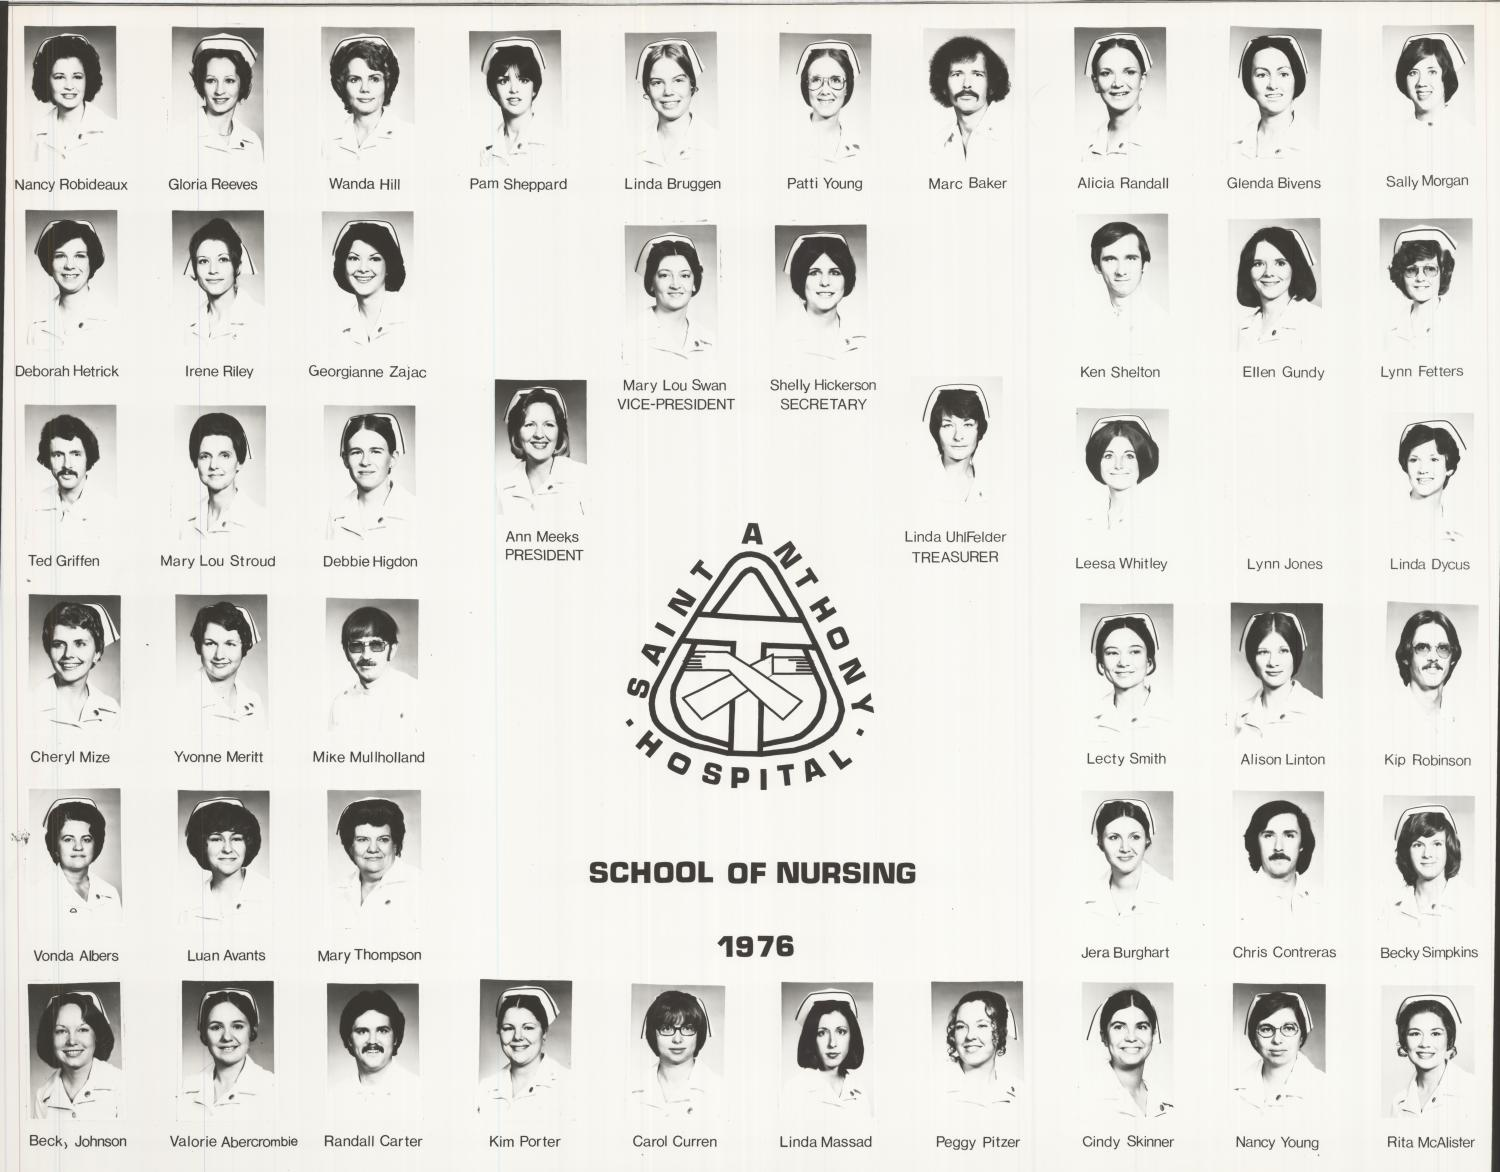 St. Anthony School of Nursing Class of 1976                                                                                                      [Sequence #]: 1 of 1